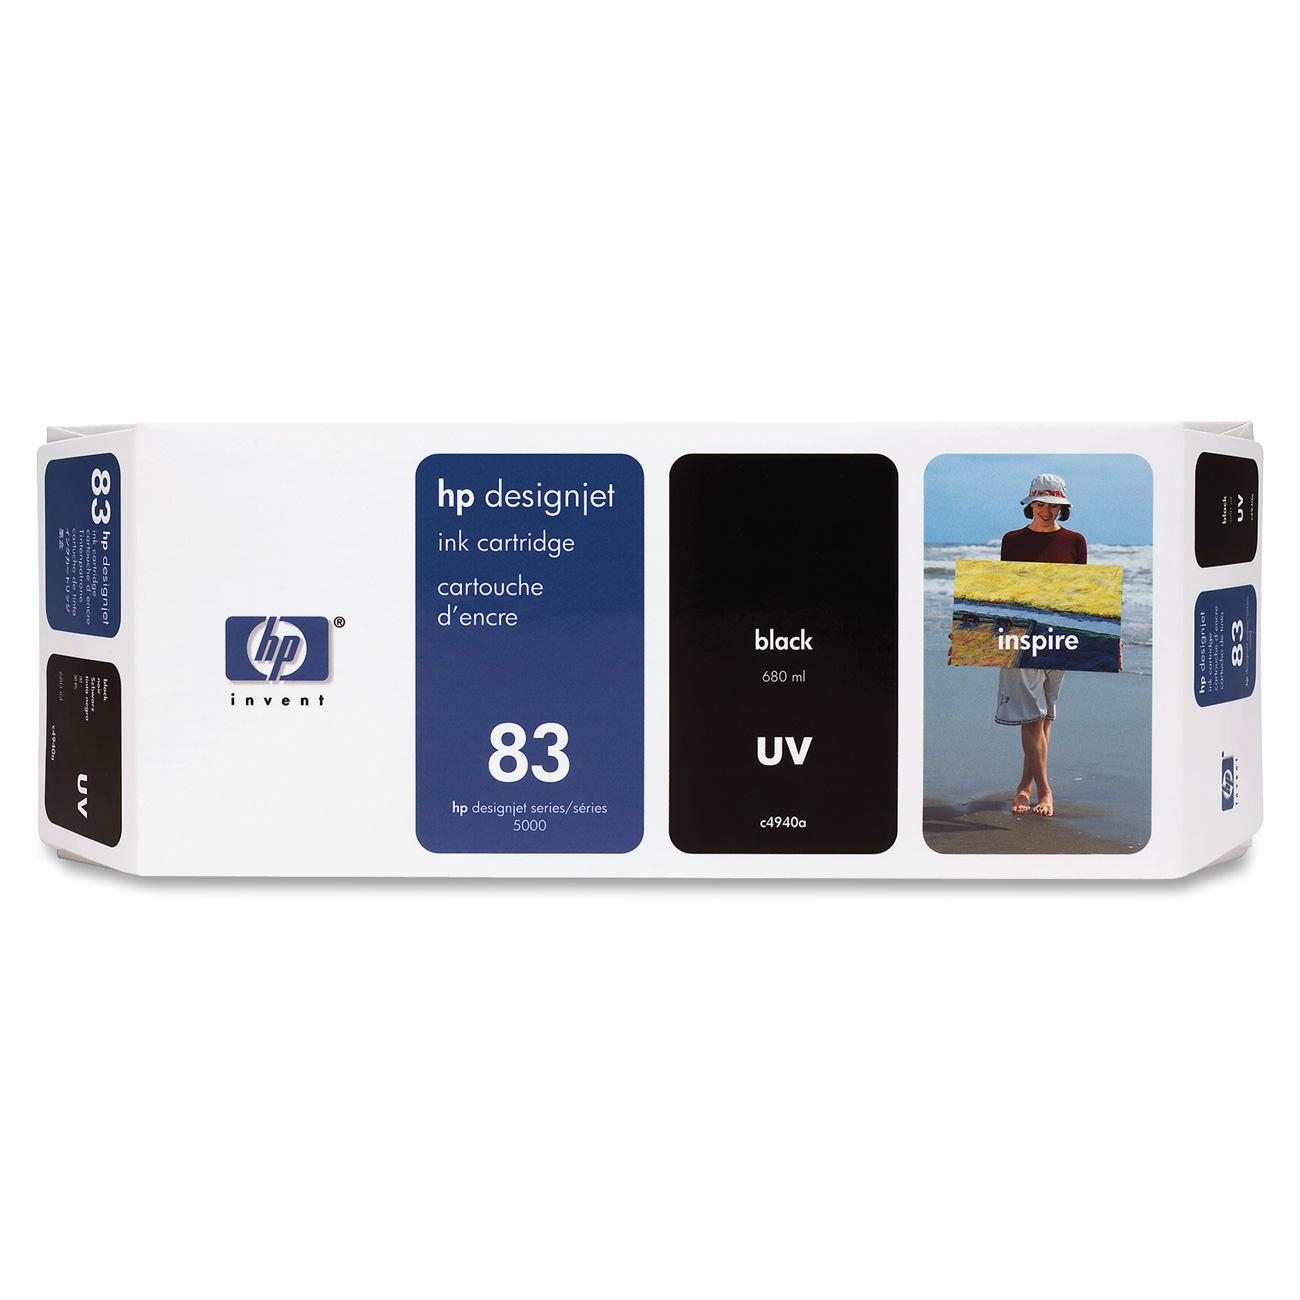 HP 83 Black UV Ink Cartridge C4940A